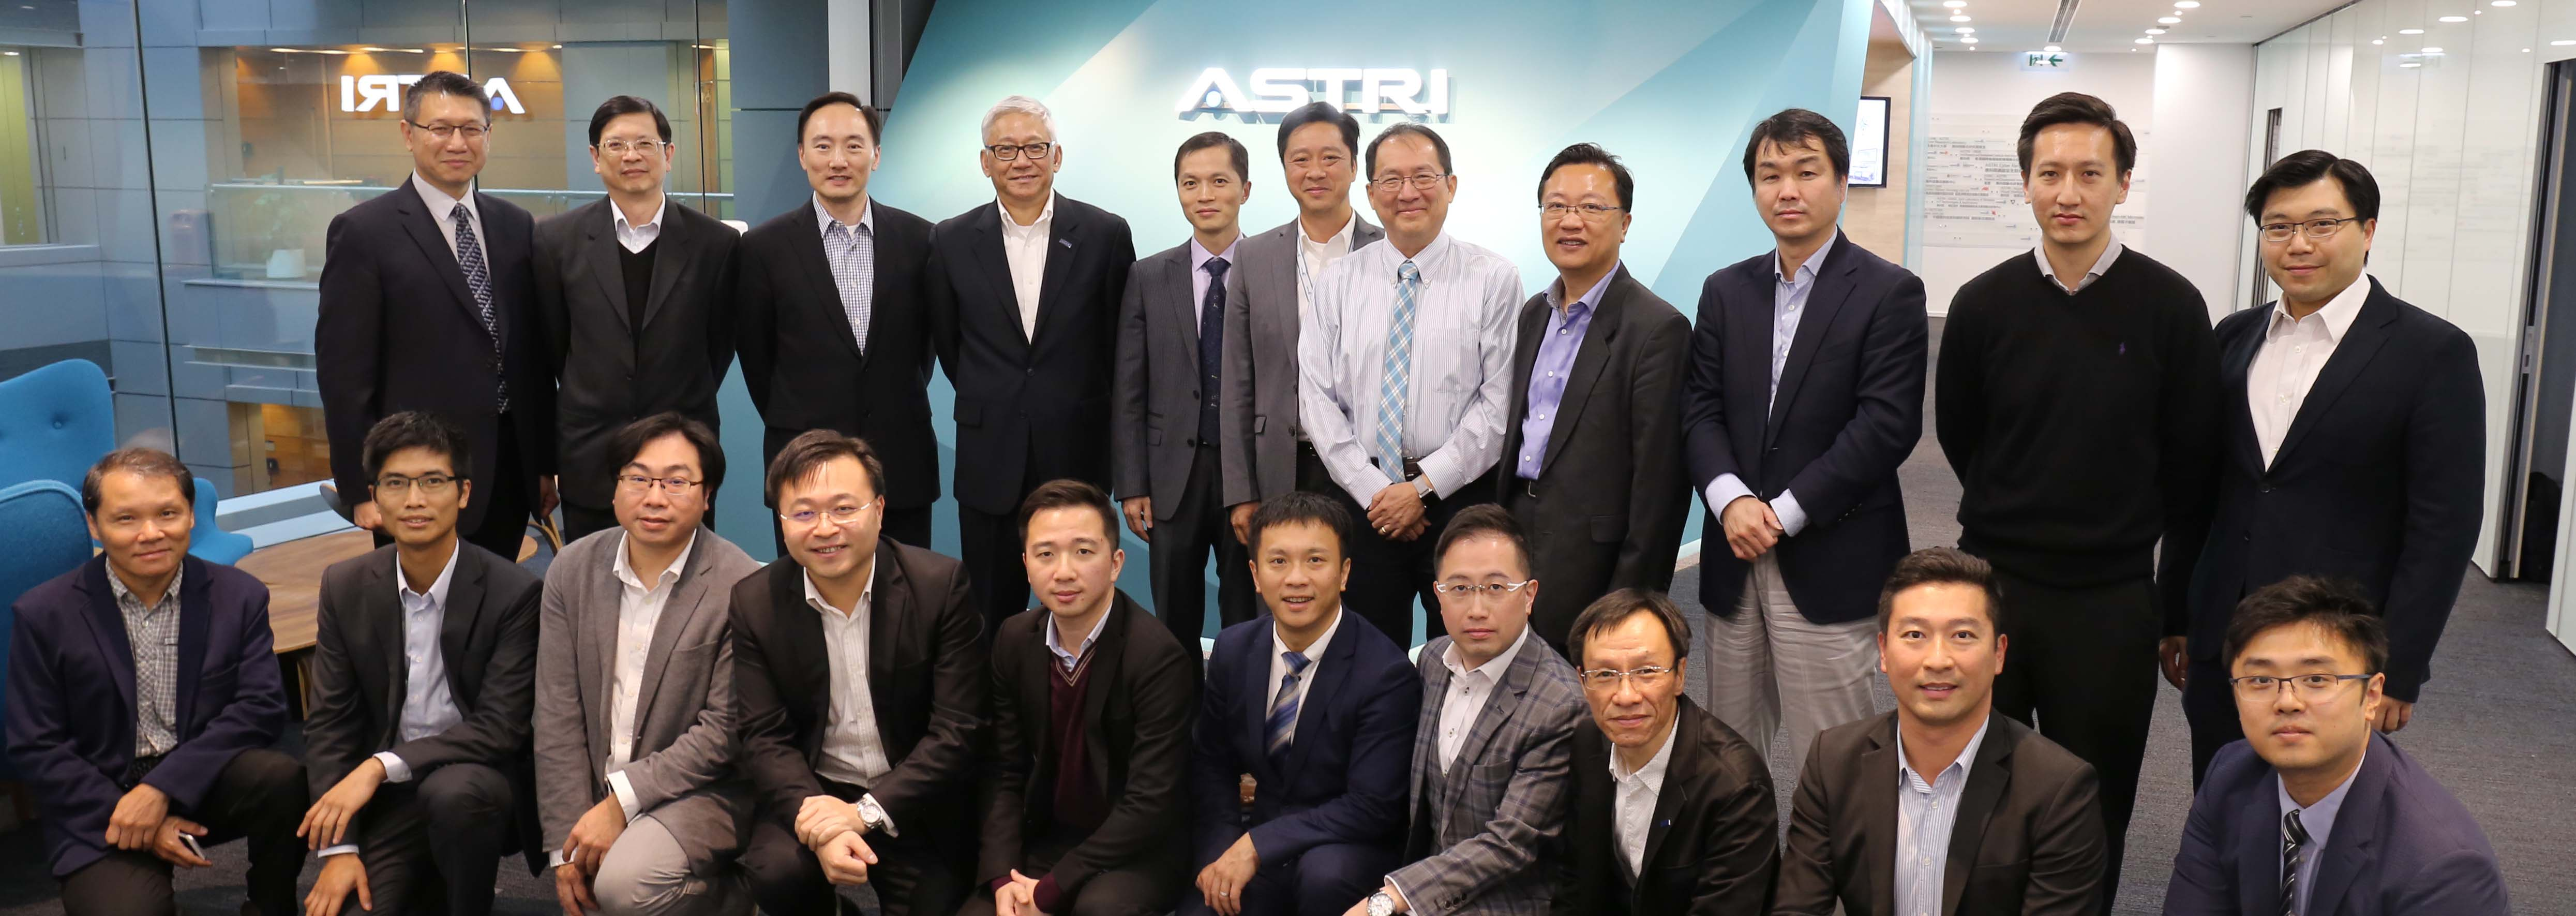 Delegation from HKT, Huawei, and Qualcomm visit ASTRI